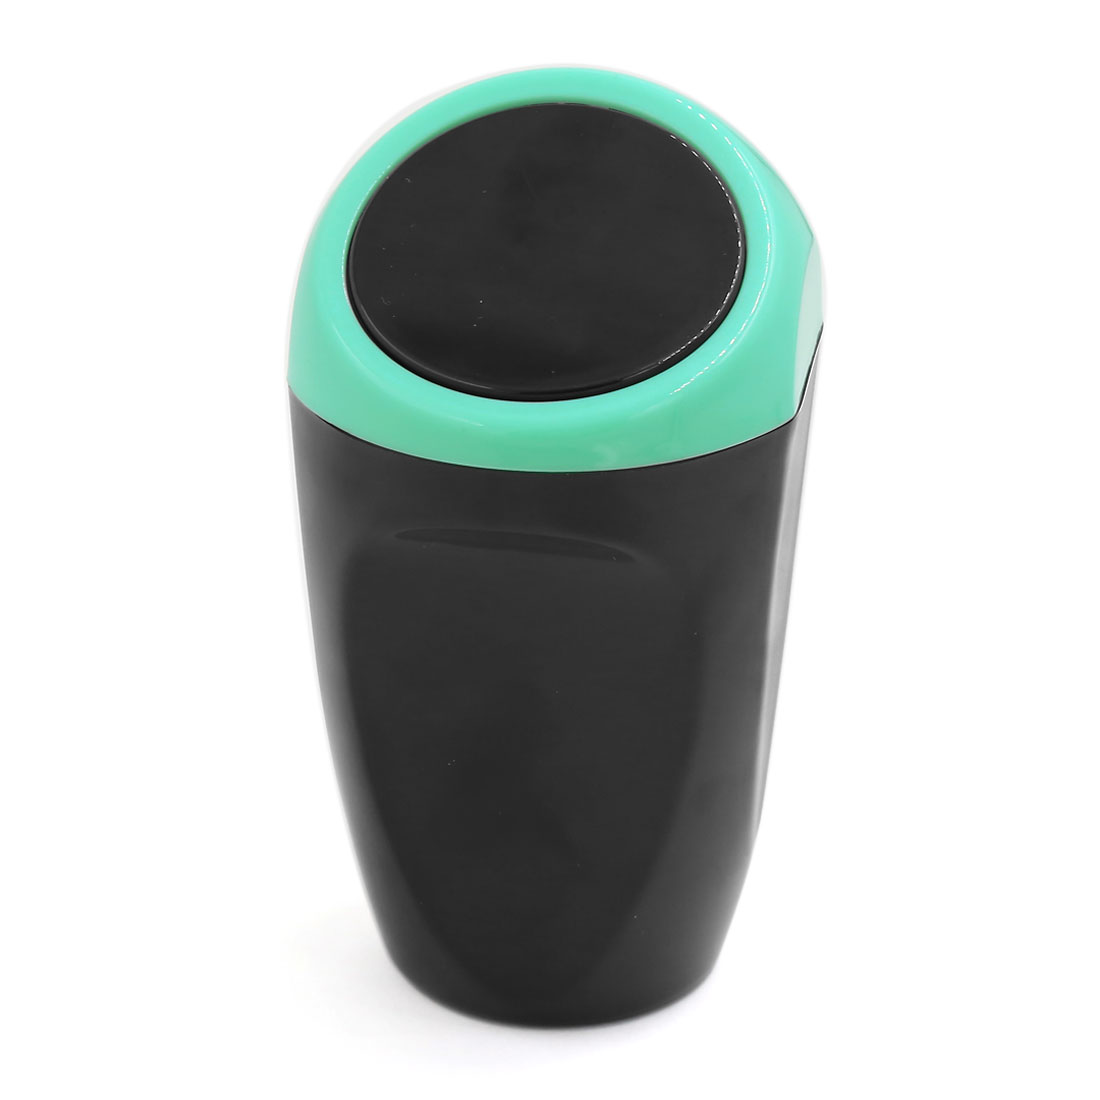 Home Car Mini Trash Rubbish Bin Can Garbage Dust Dustbin Holder Black Blue